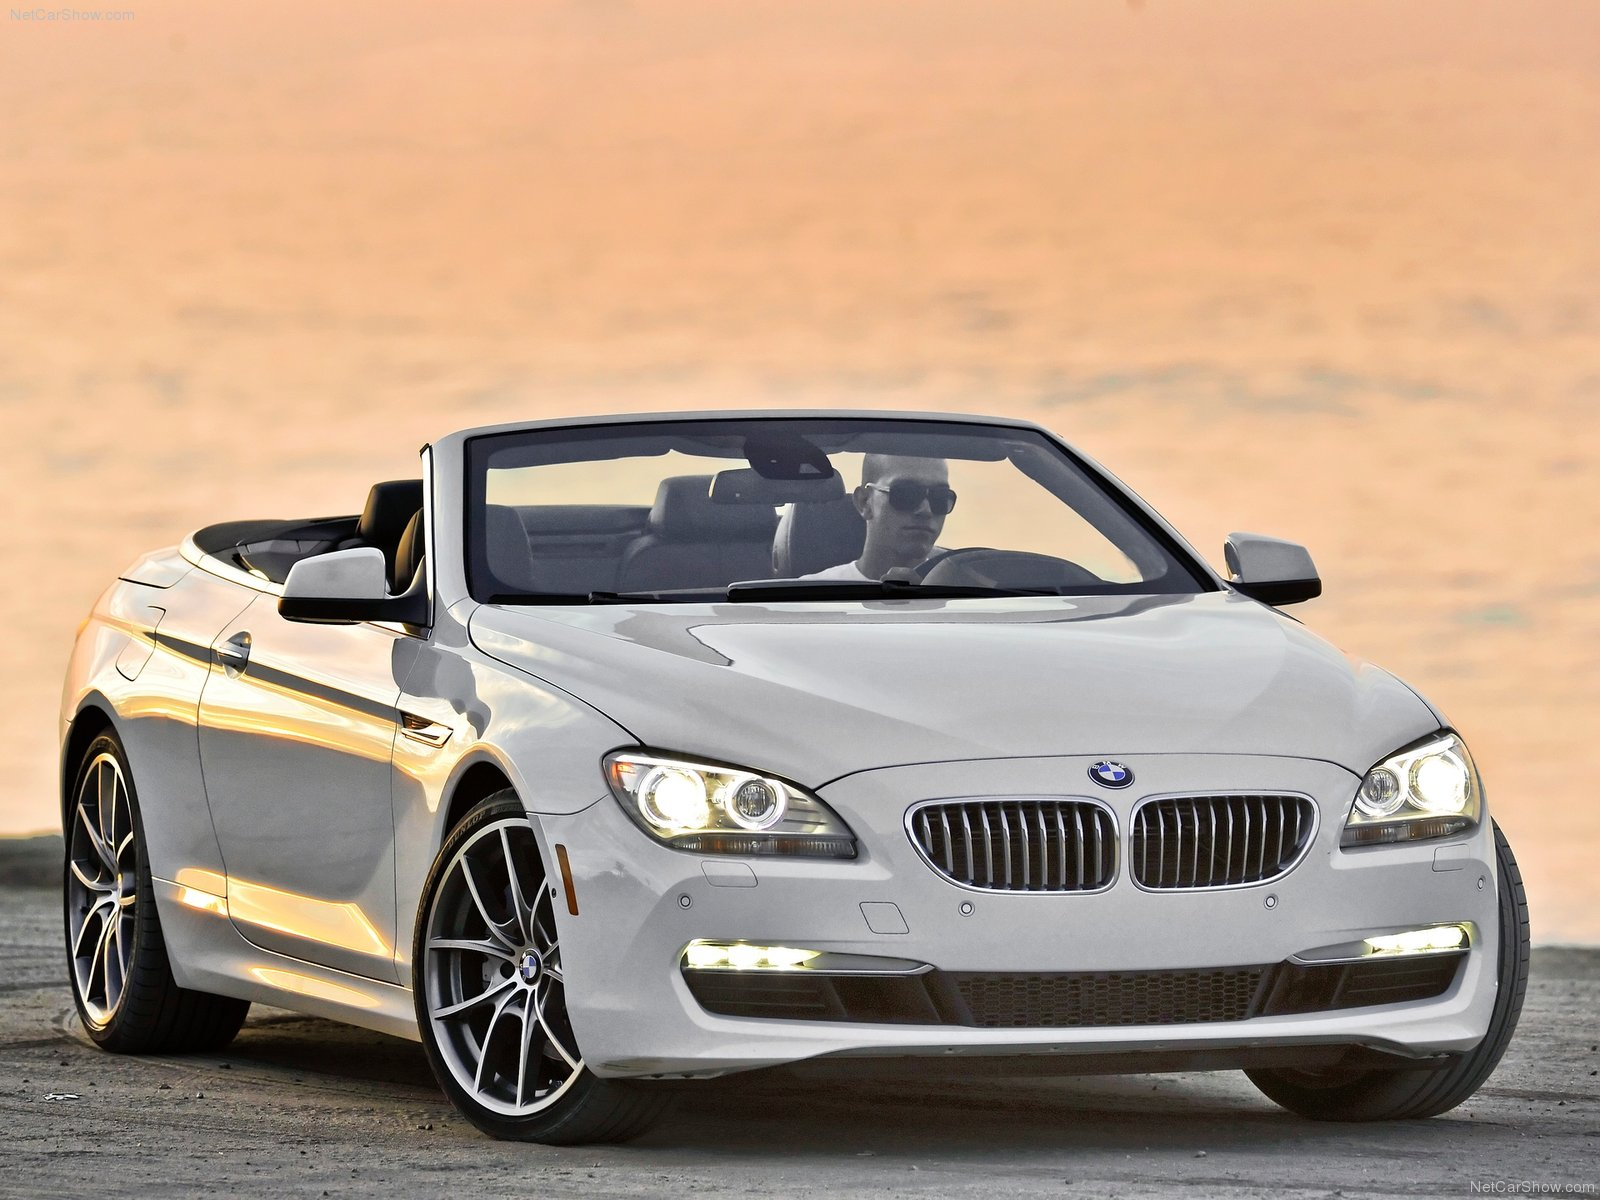 BMW 6-series F13 Convertible photo 81144